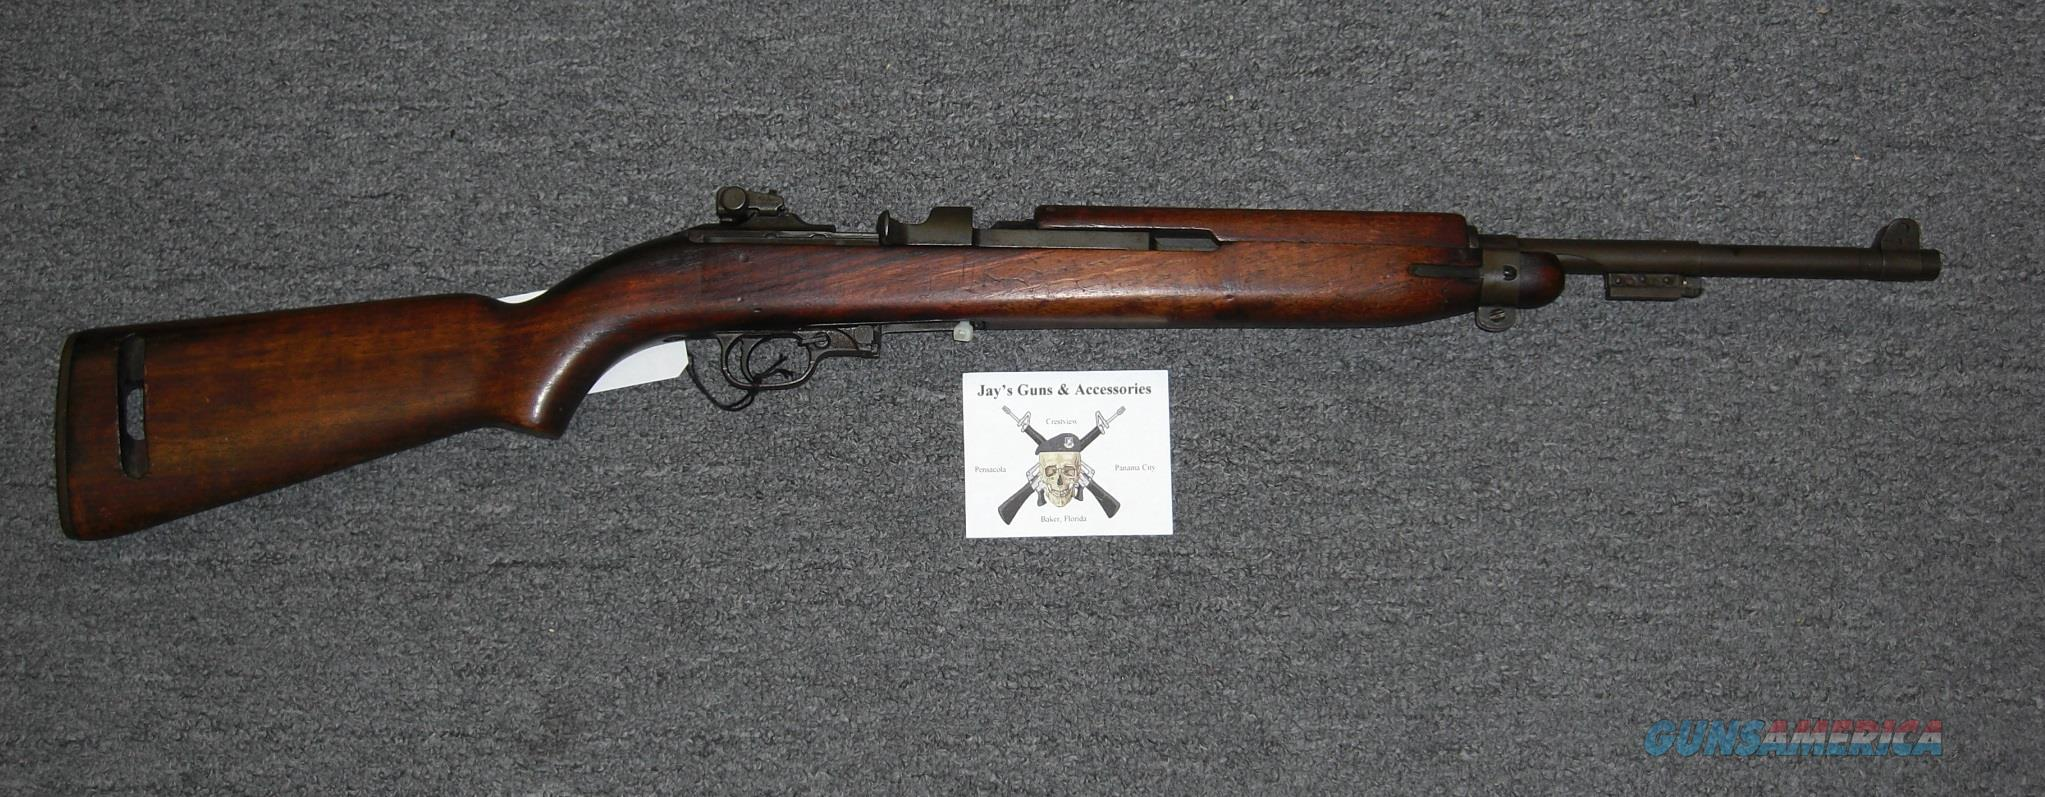 Underwood M1 Carbine Mfr 1943  Guns > Rifles > Military Misc. Rifles US > M1 Carbine